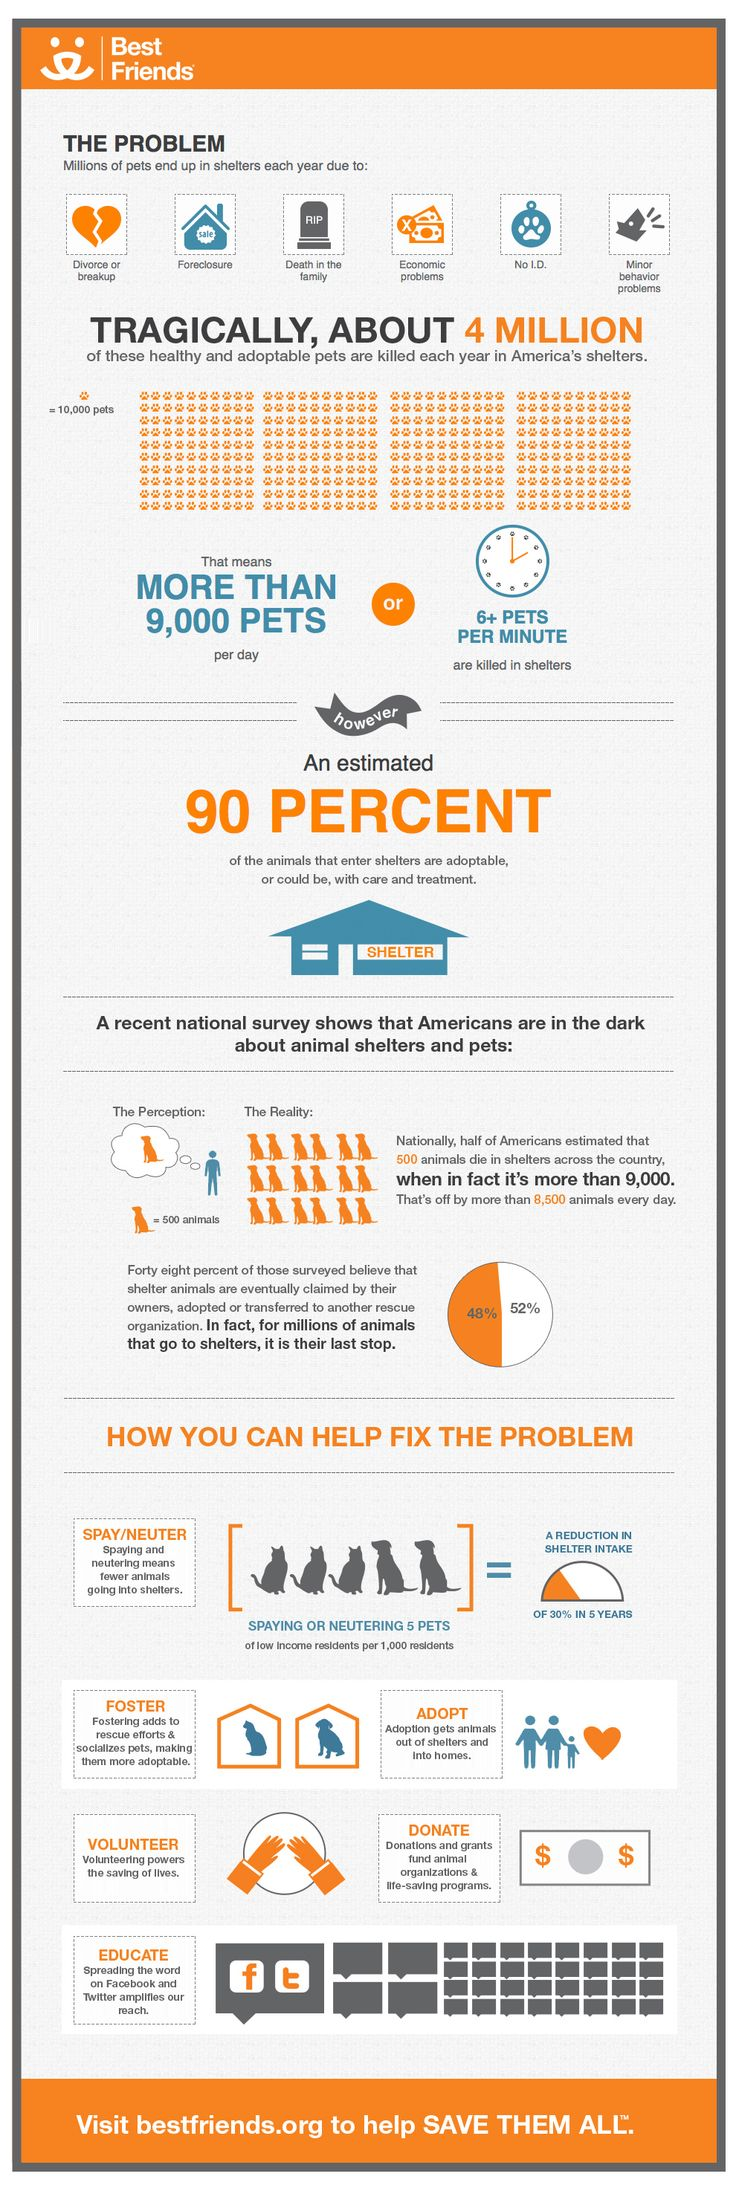 SAVE THEM ALL Most Americans don't know that more than 9000 dogs and cats are killed in shelters every day. You can help save these animals. Check out this infographic and share it with your friends. Spread the word to help Save Them All. SAVE THEM ALL INFO